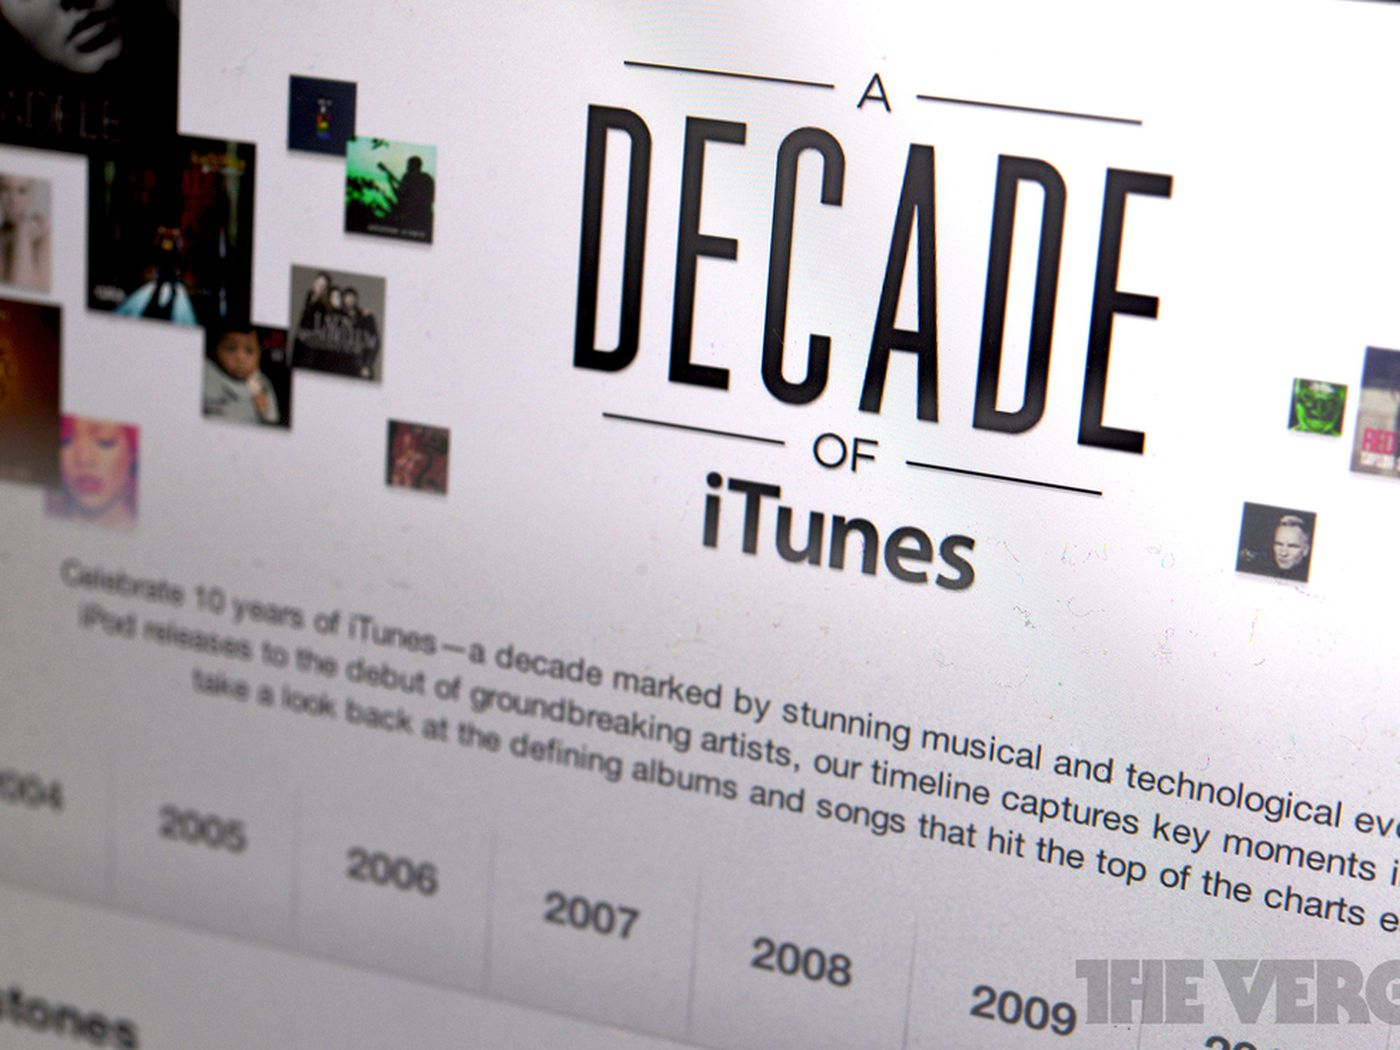 Apple prepares for iTunes' tenth anniversary with timeline of how it  changed music industry - The Verge